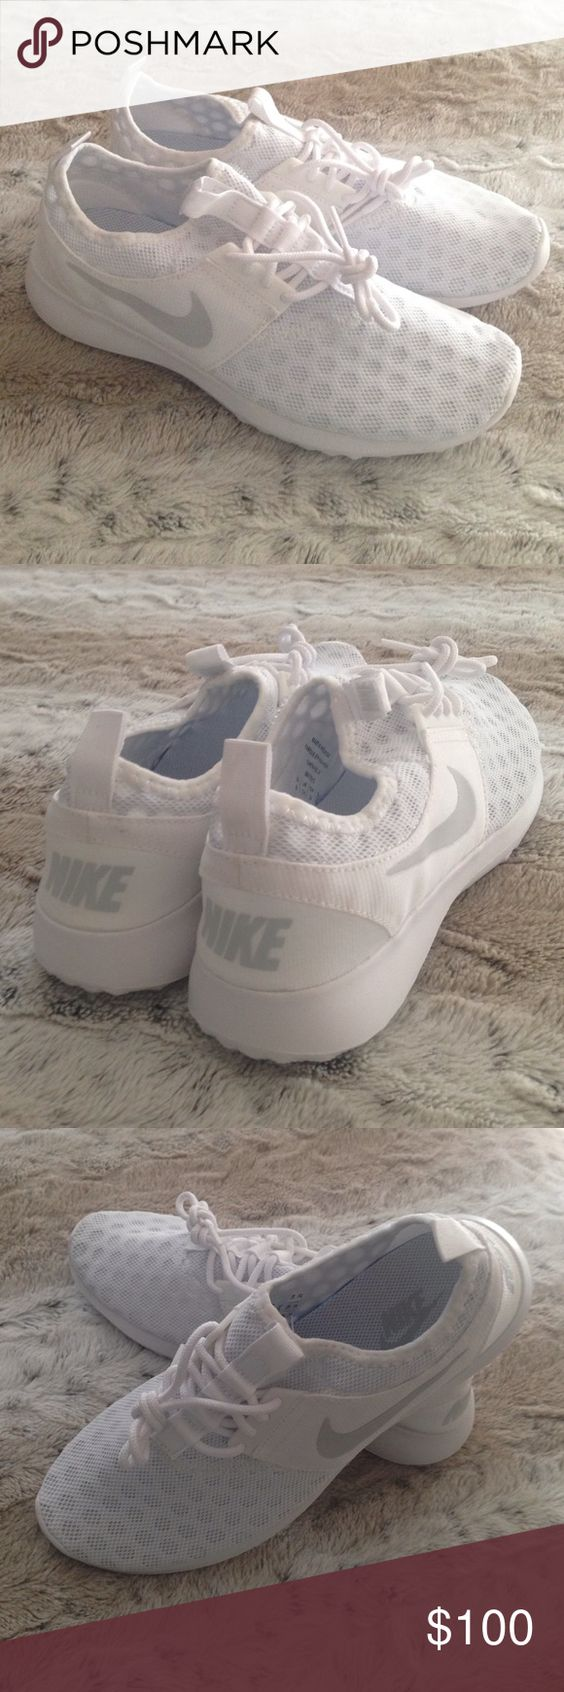 .:: ADD'L PICS ONLY - DO NOT BUY ::. Nike Juvenate Zenji Platinum White Women's 8  W/O BOX/RETAIL TAGS, NEVER WORN ✖️NO TRADES • NO PP • NO MERC@RI  ✔️ADD'L INFO/PICS BY REQUEST ✔️POSTED = AVAILABLE  ✔REASONABLE OFFERS WELCOMED ✔BUNDLE 2+ FOR 10% DISCOUNT Nike Shoes Athletic Shoes